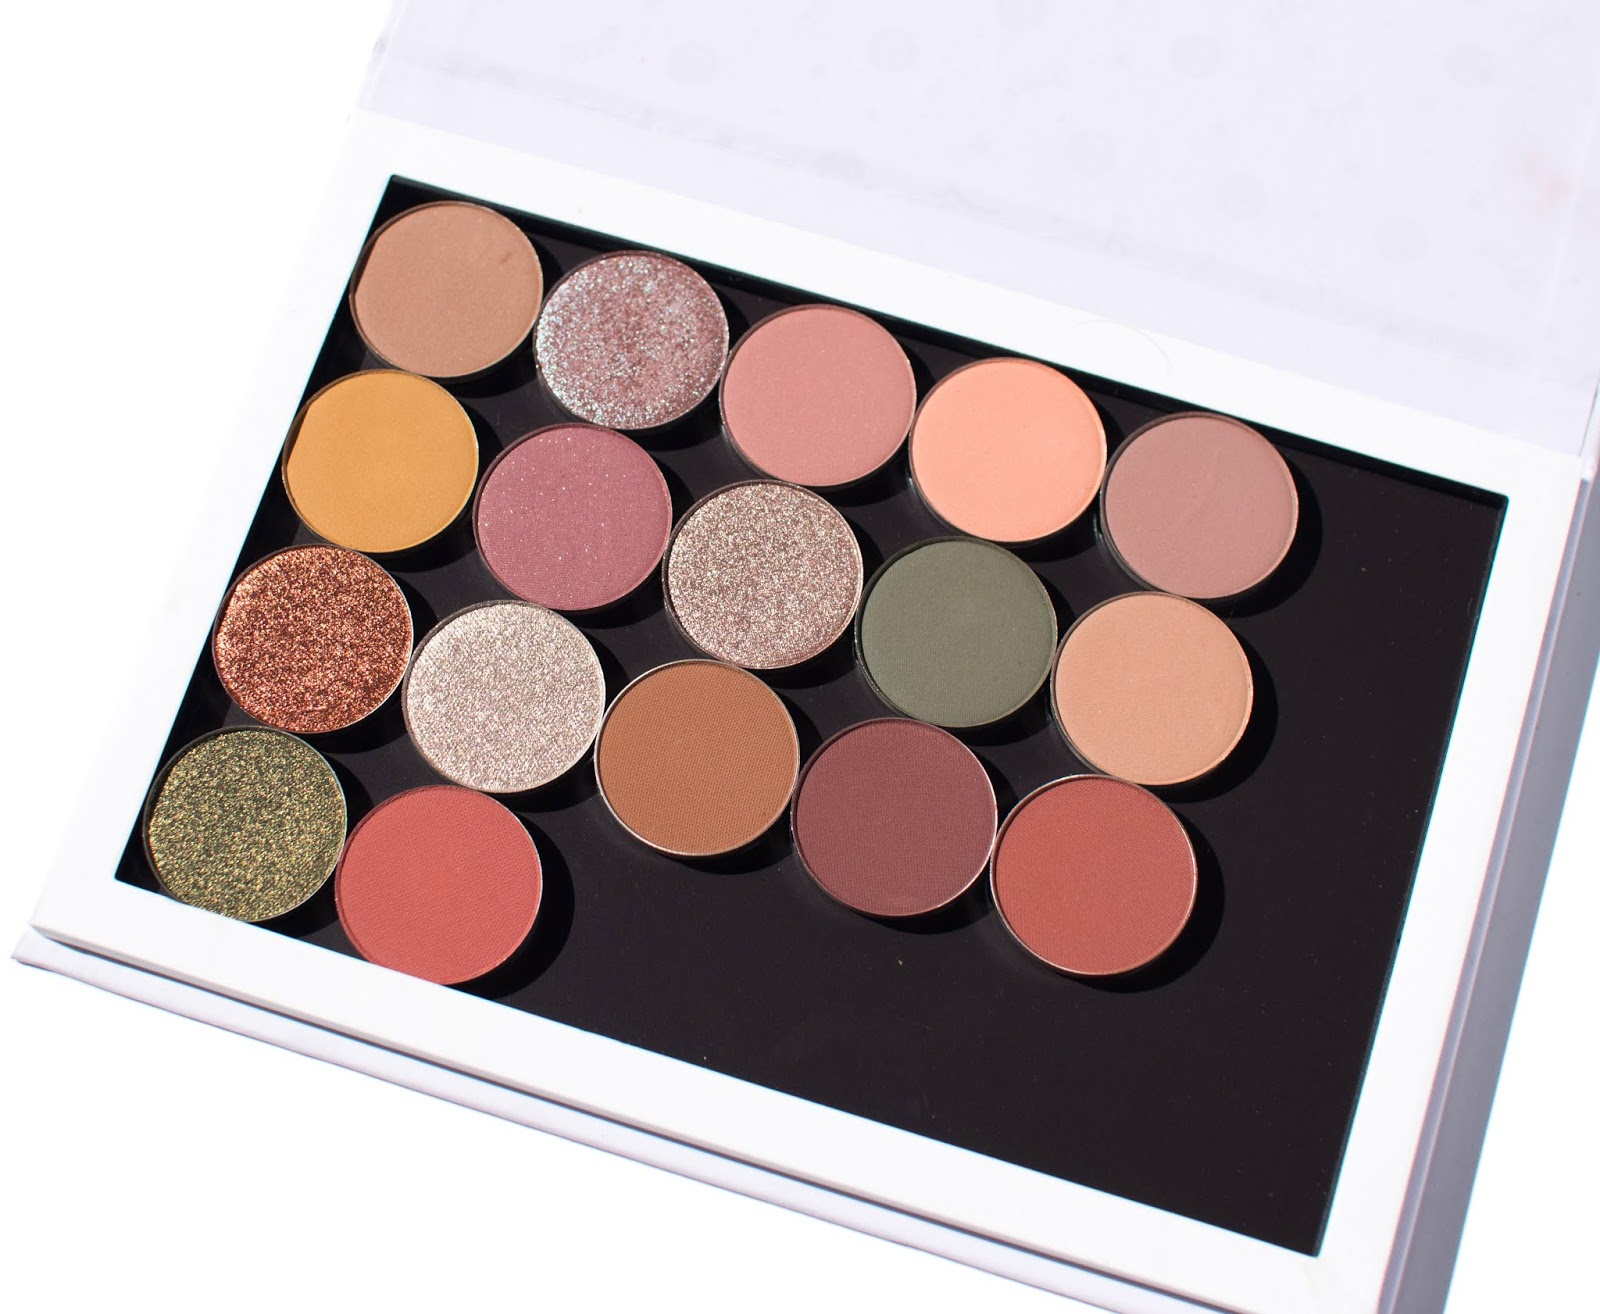 fee1a567538 Eyeshadow Haul and A New Perspective on Eyeshadows Palettes ...